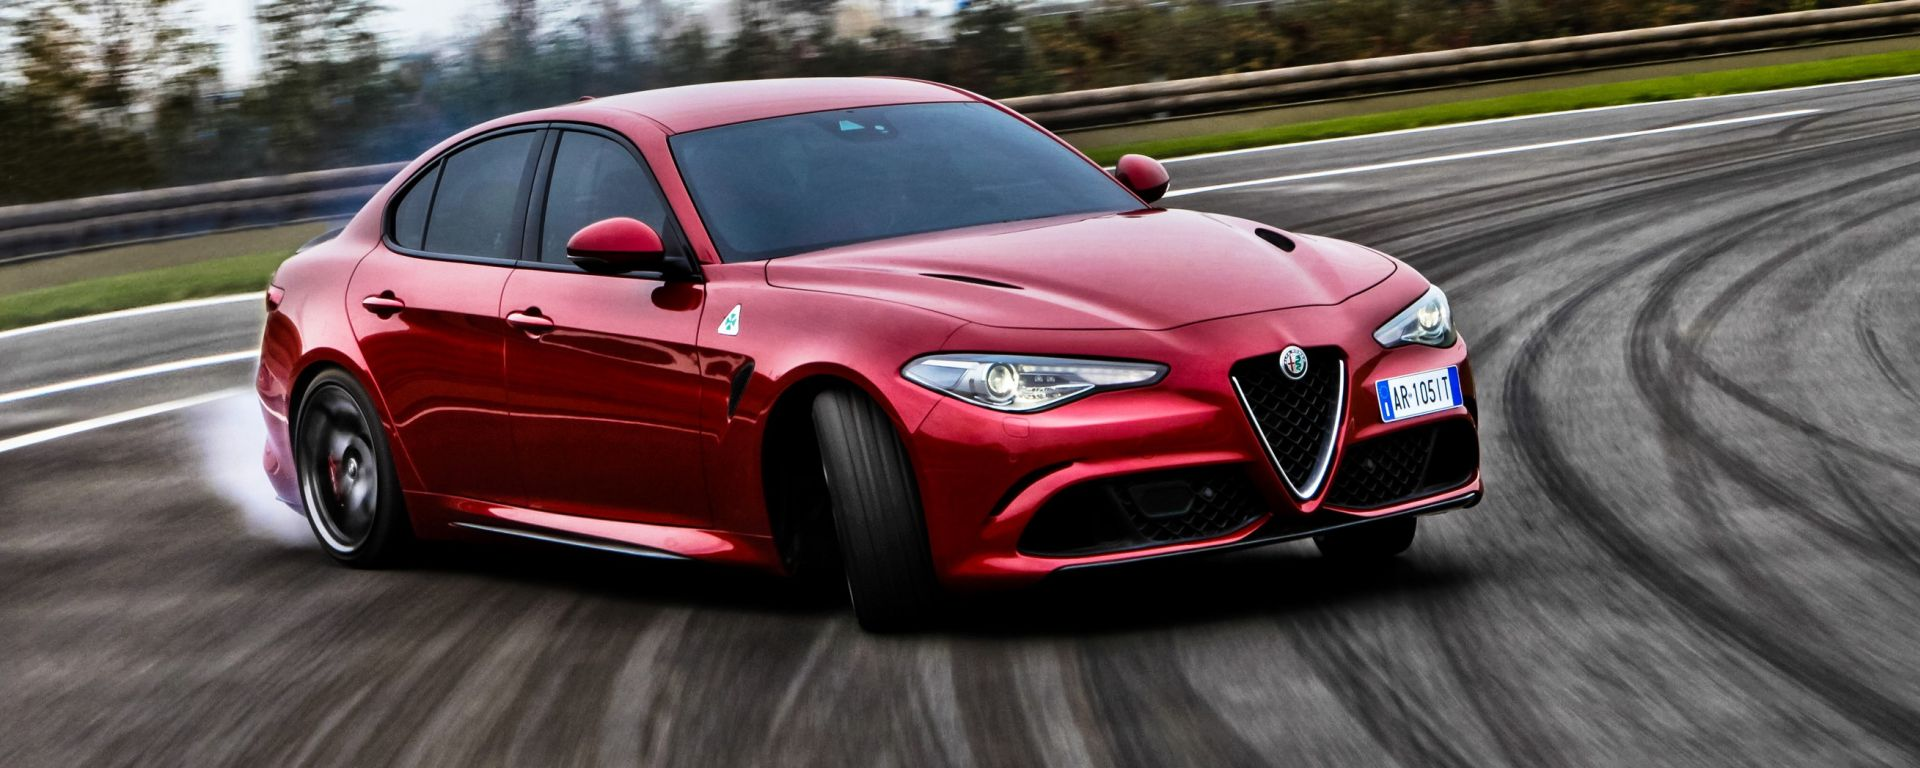 video prova alfa romeo giulia quadrifoglio test drive in pista motorbox. Black Bedroom Furniture Sets. Home Design Ideas